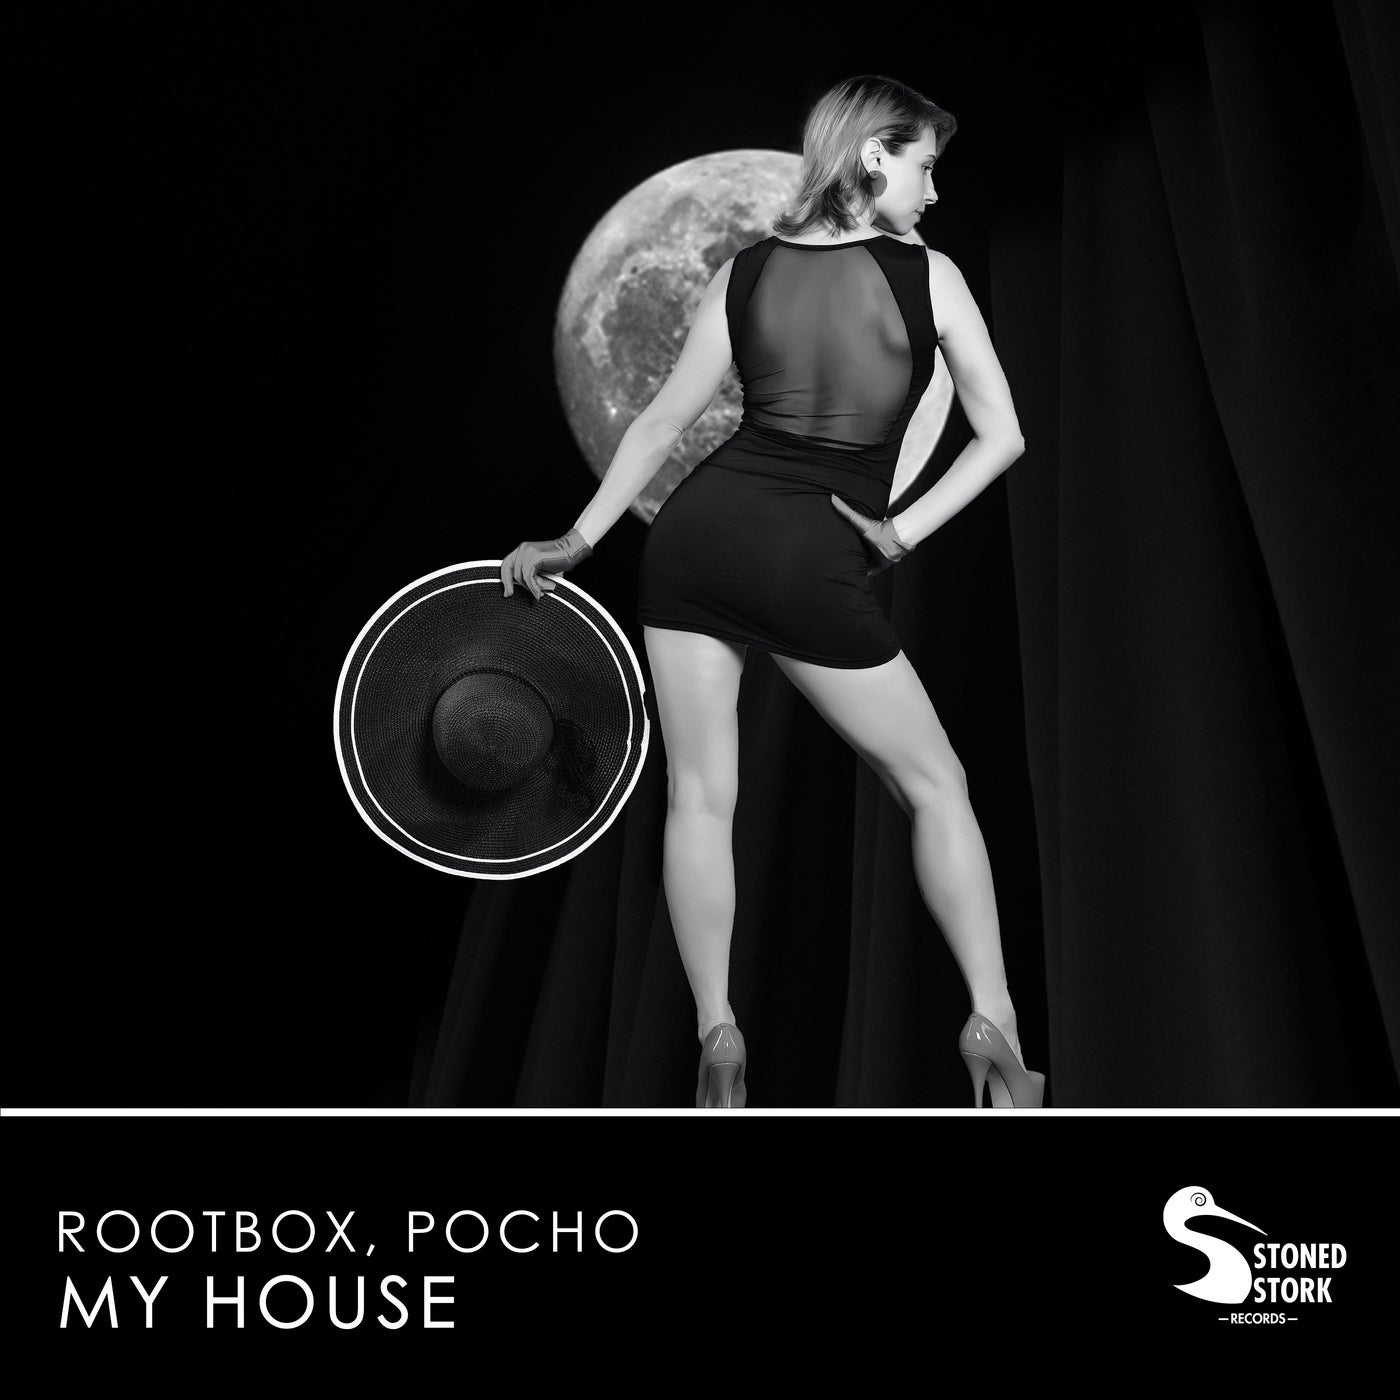 Download My House [SSR045] on Electrobuzz